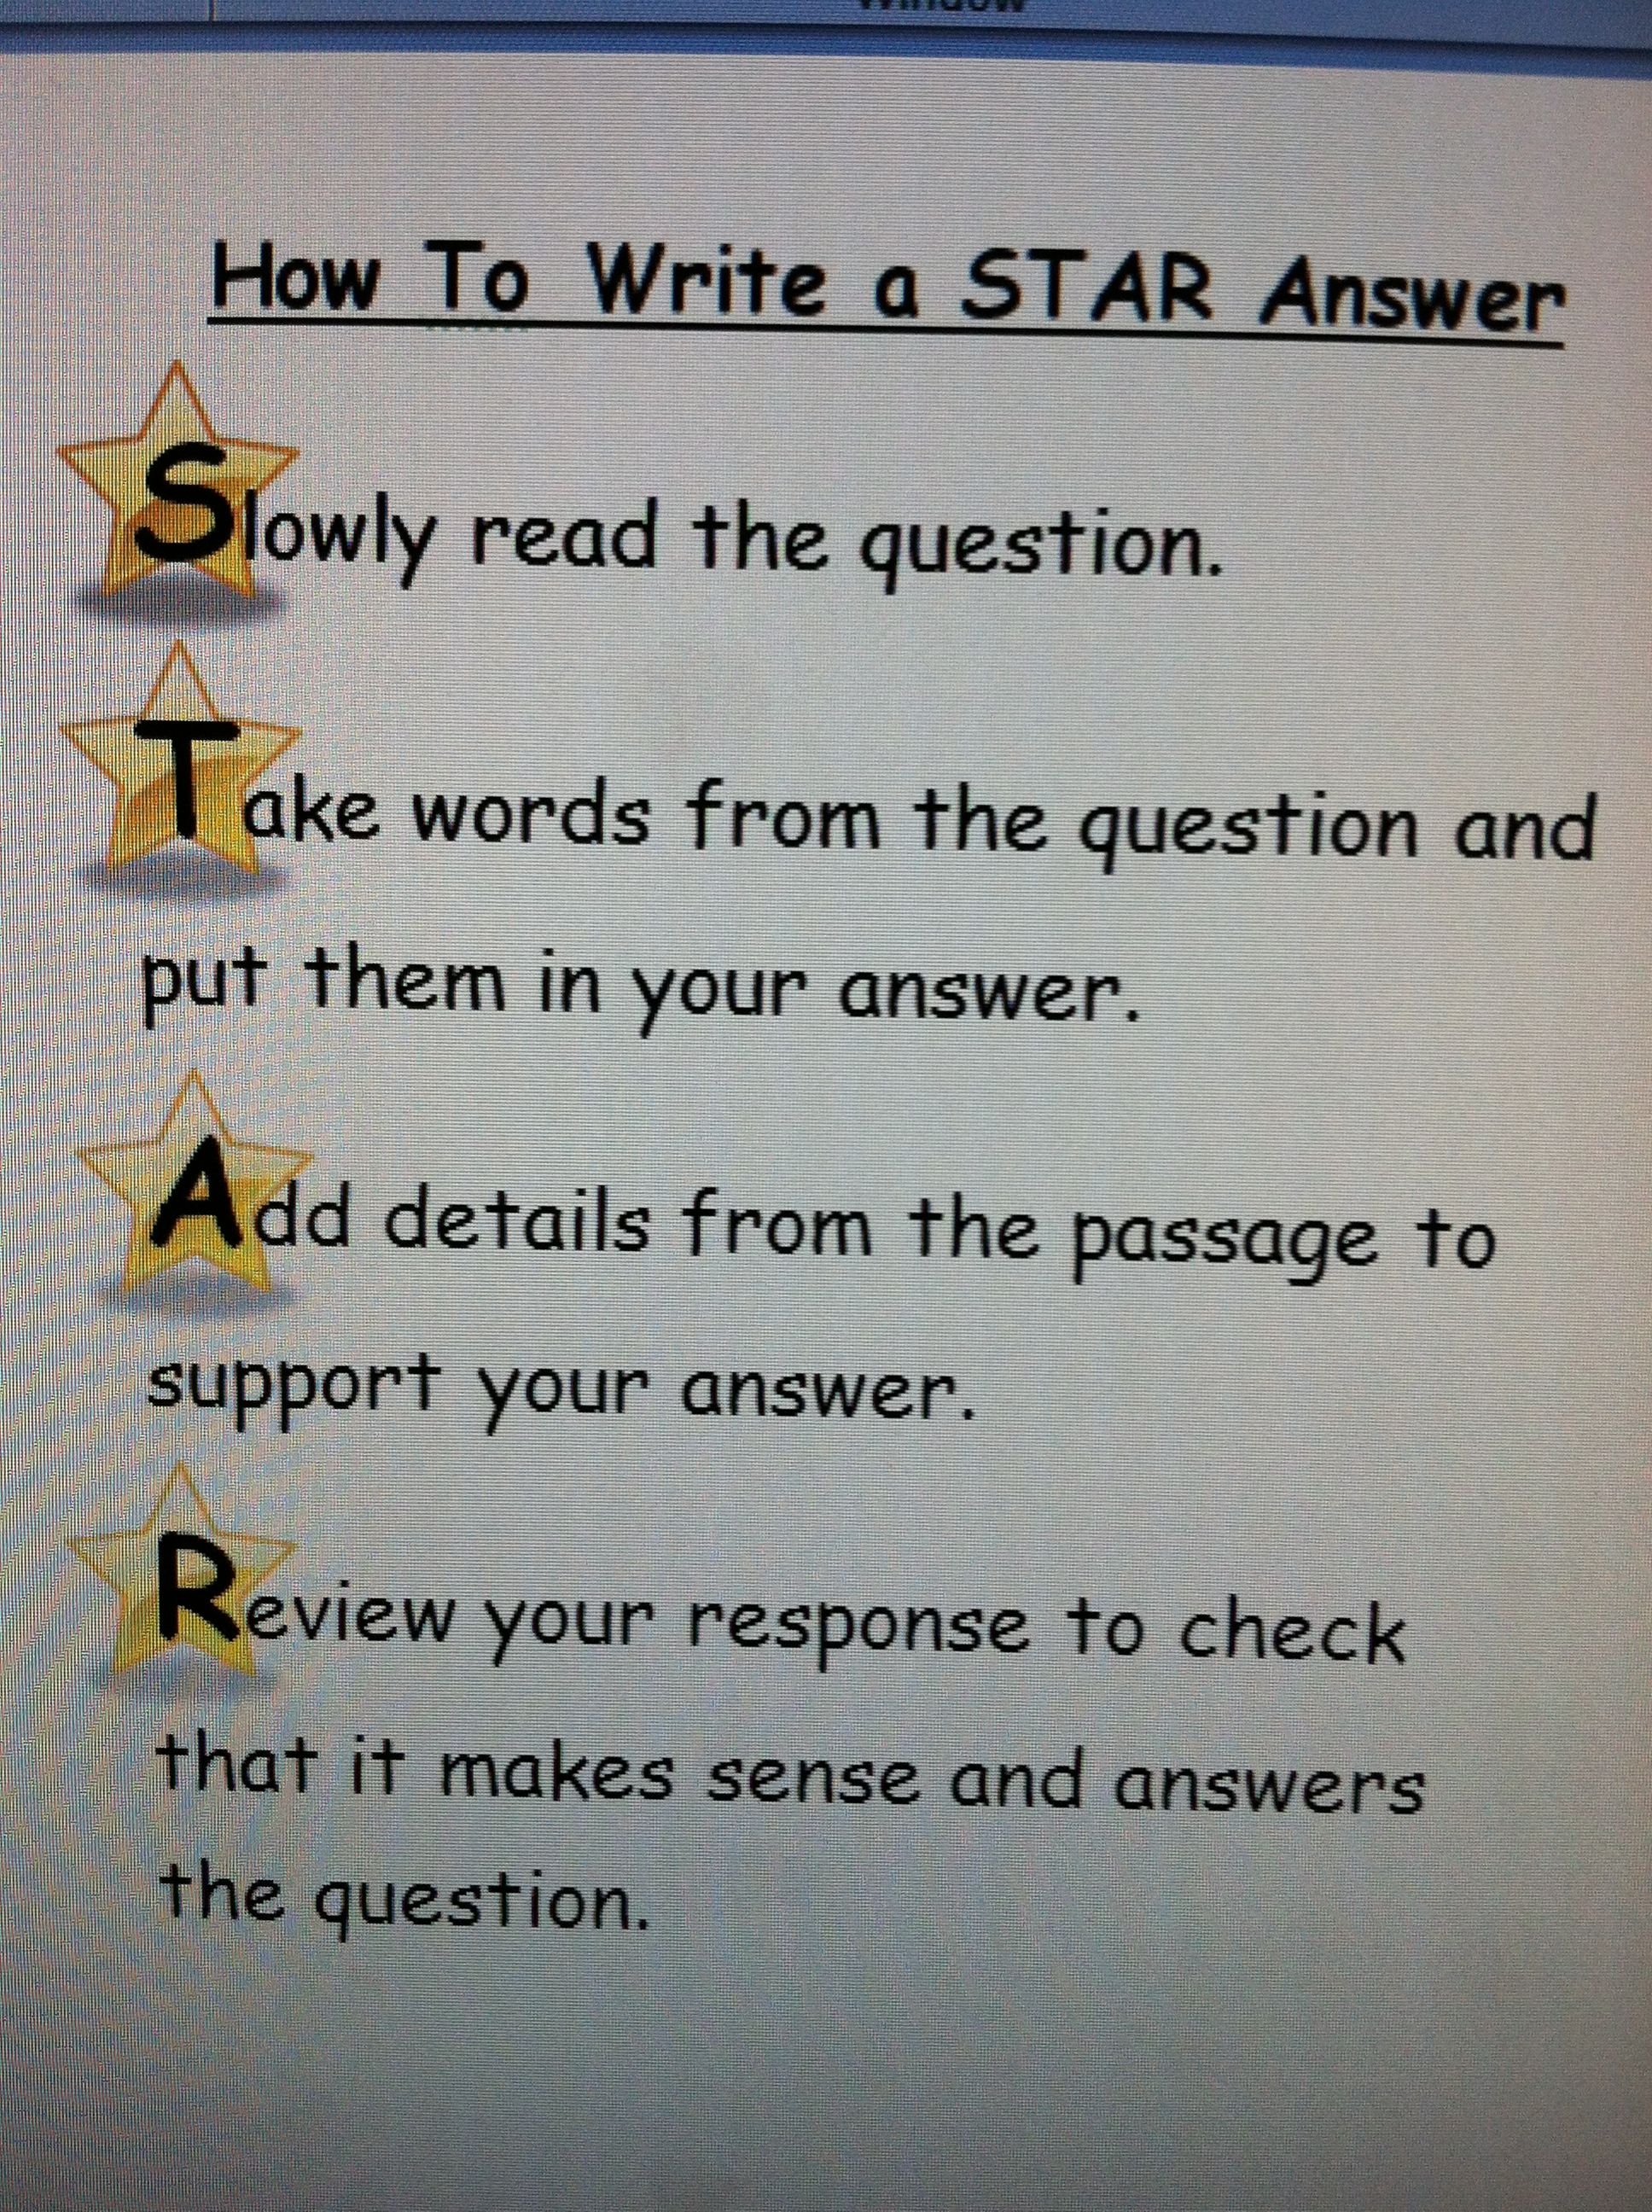 I Created This To Help My Students With Writing Answers To